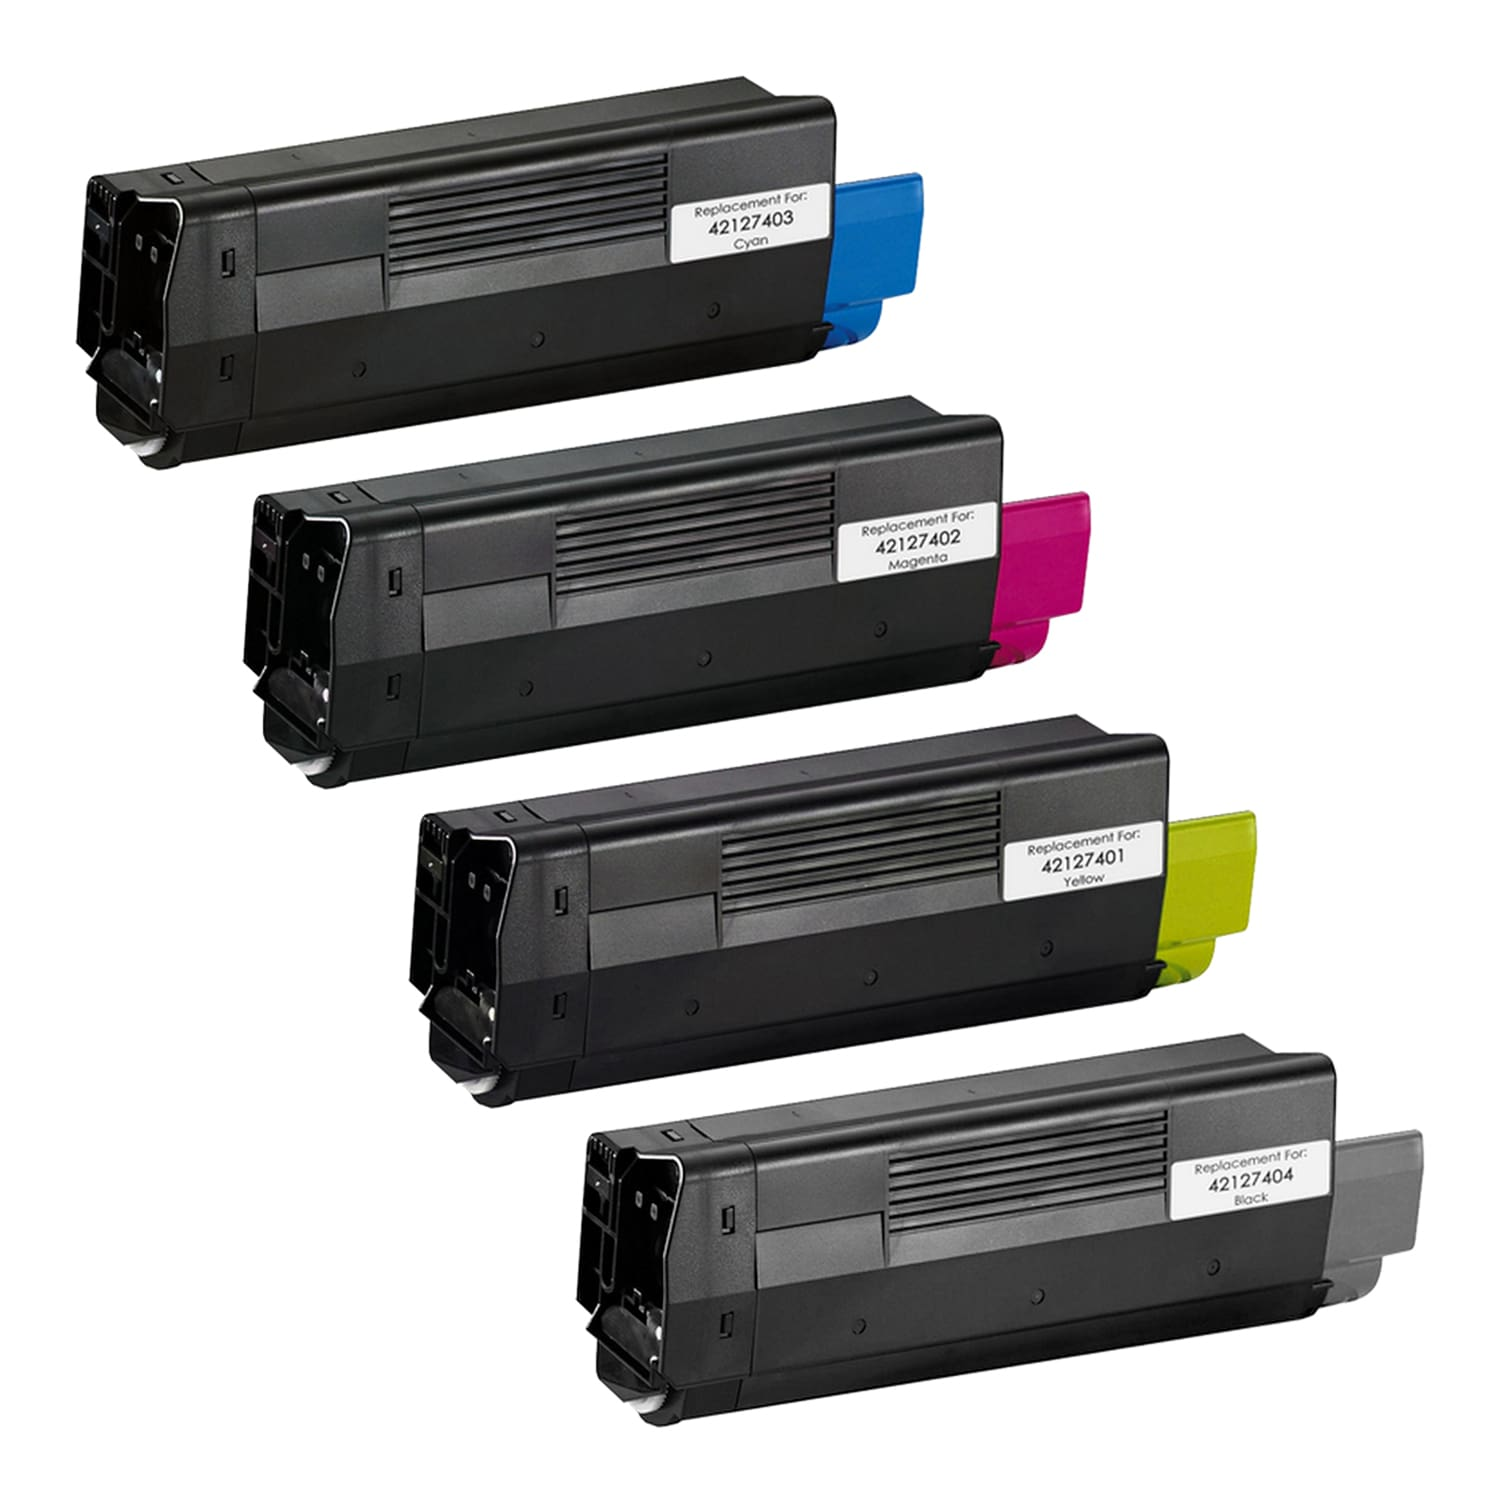 Remanufactured Okidata C5200 Toner High Capacity Pack - 4 Cartridges